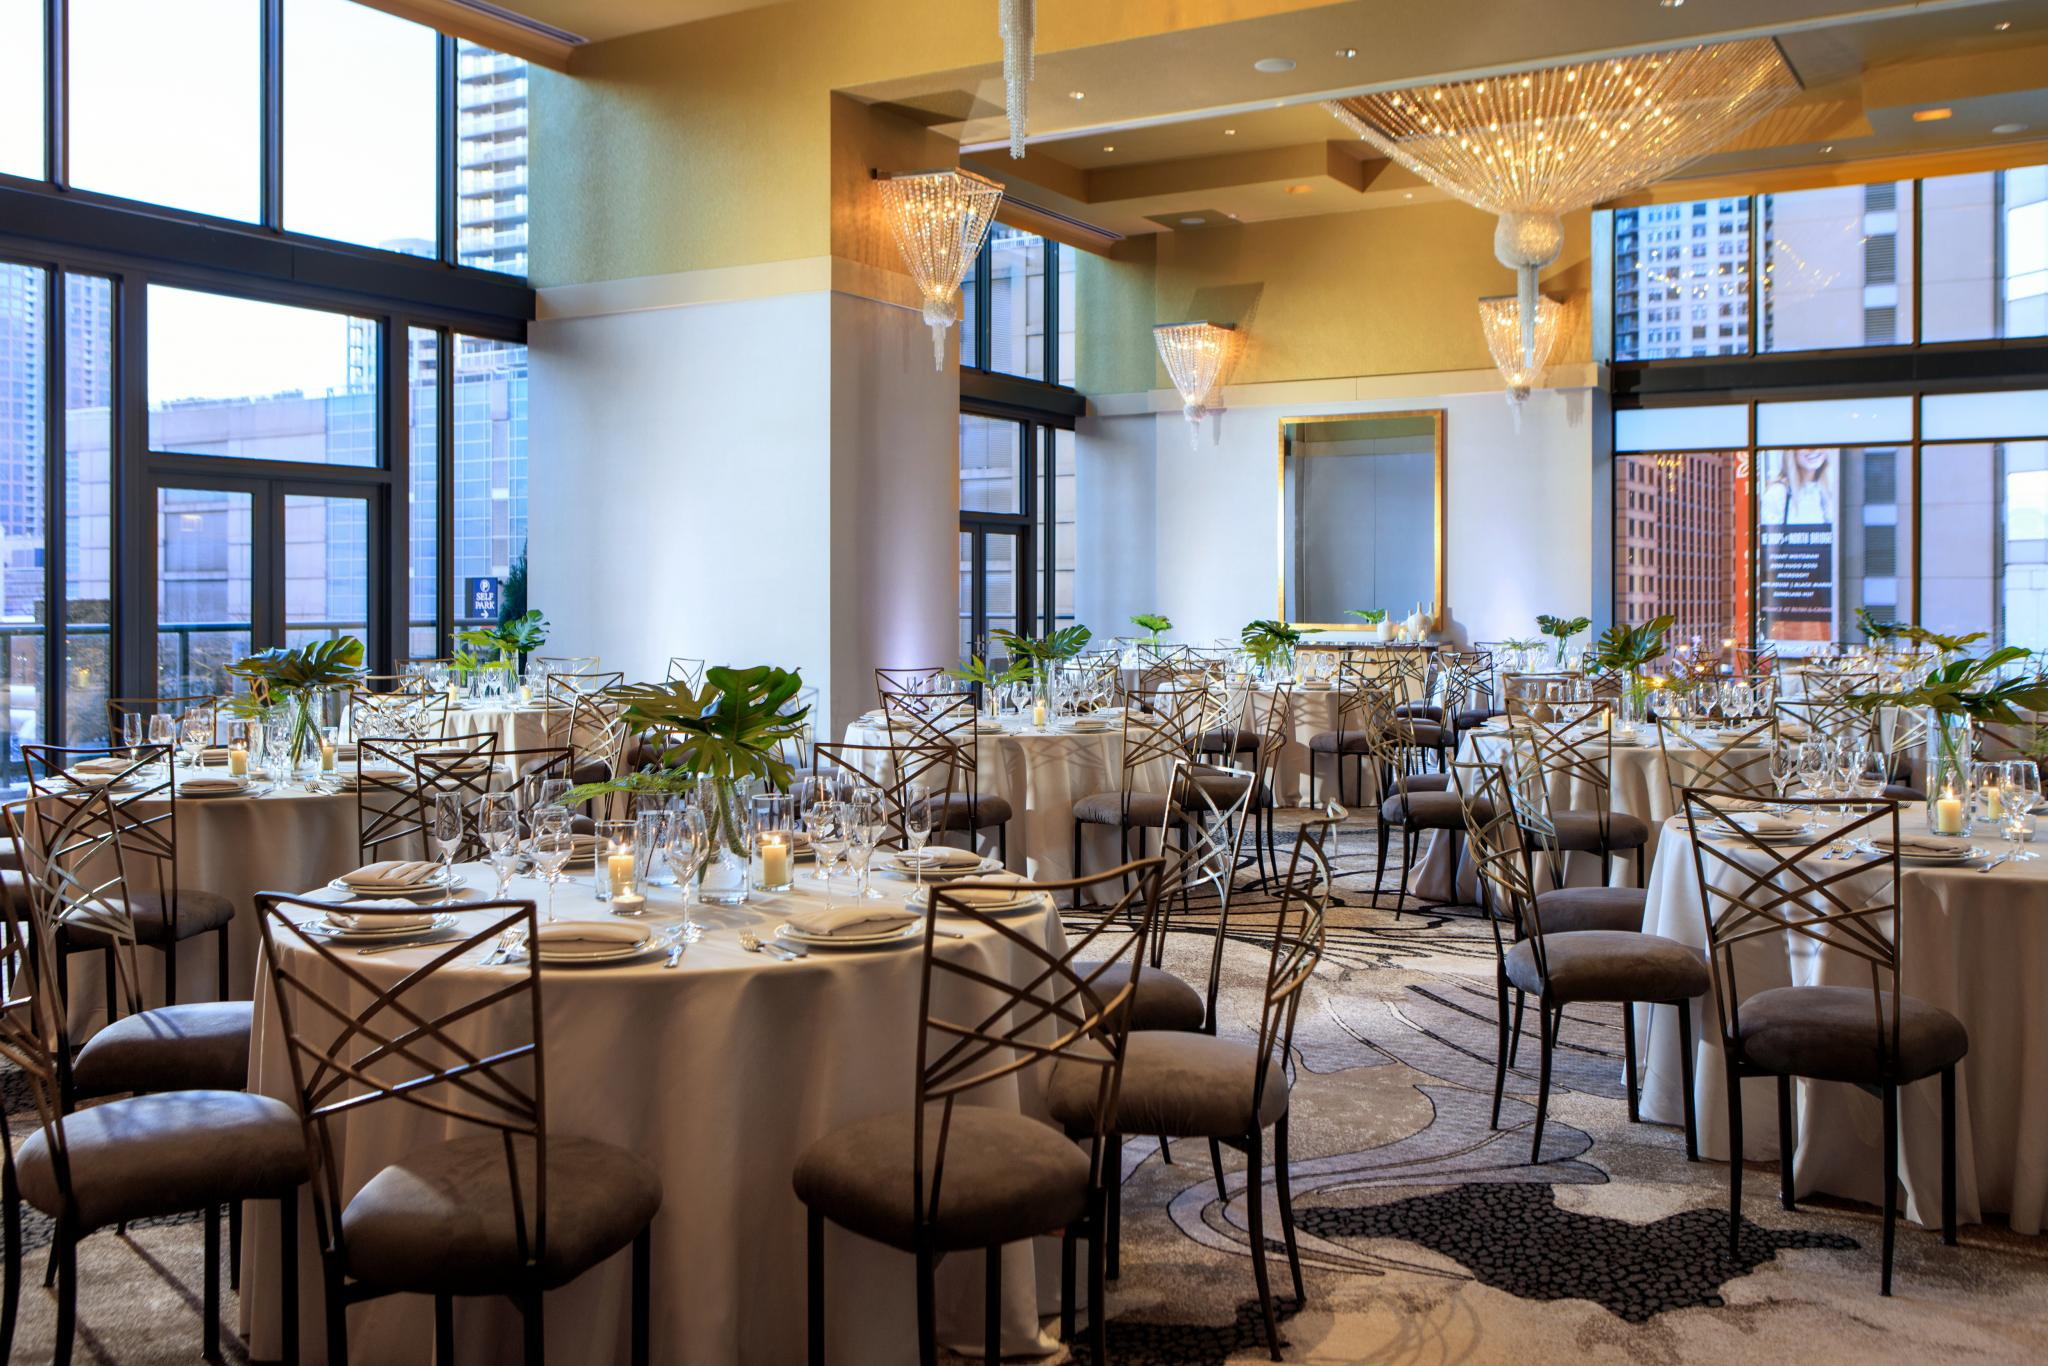 Kimpton Real Weddings: Venue Viewpoint: Kimpton Hotel Palomar Chicago